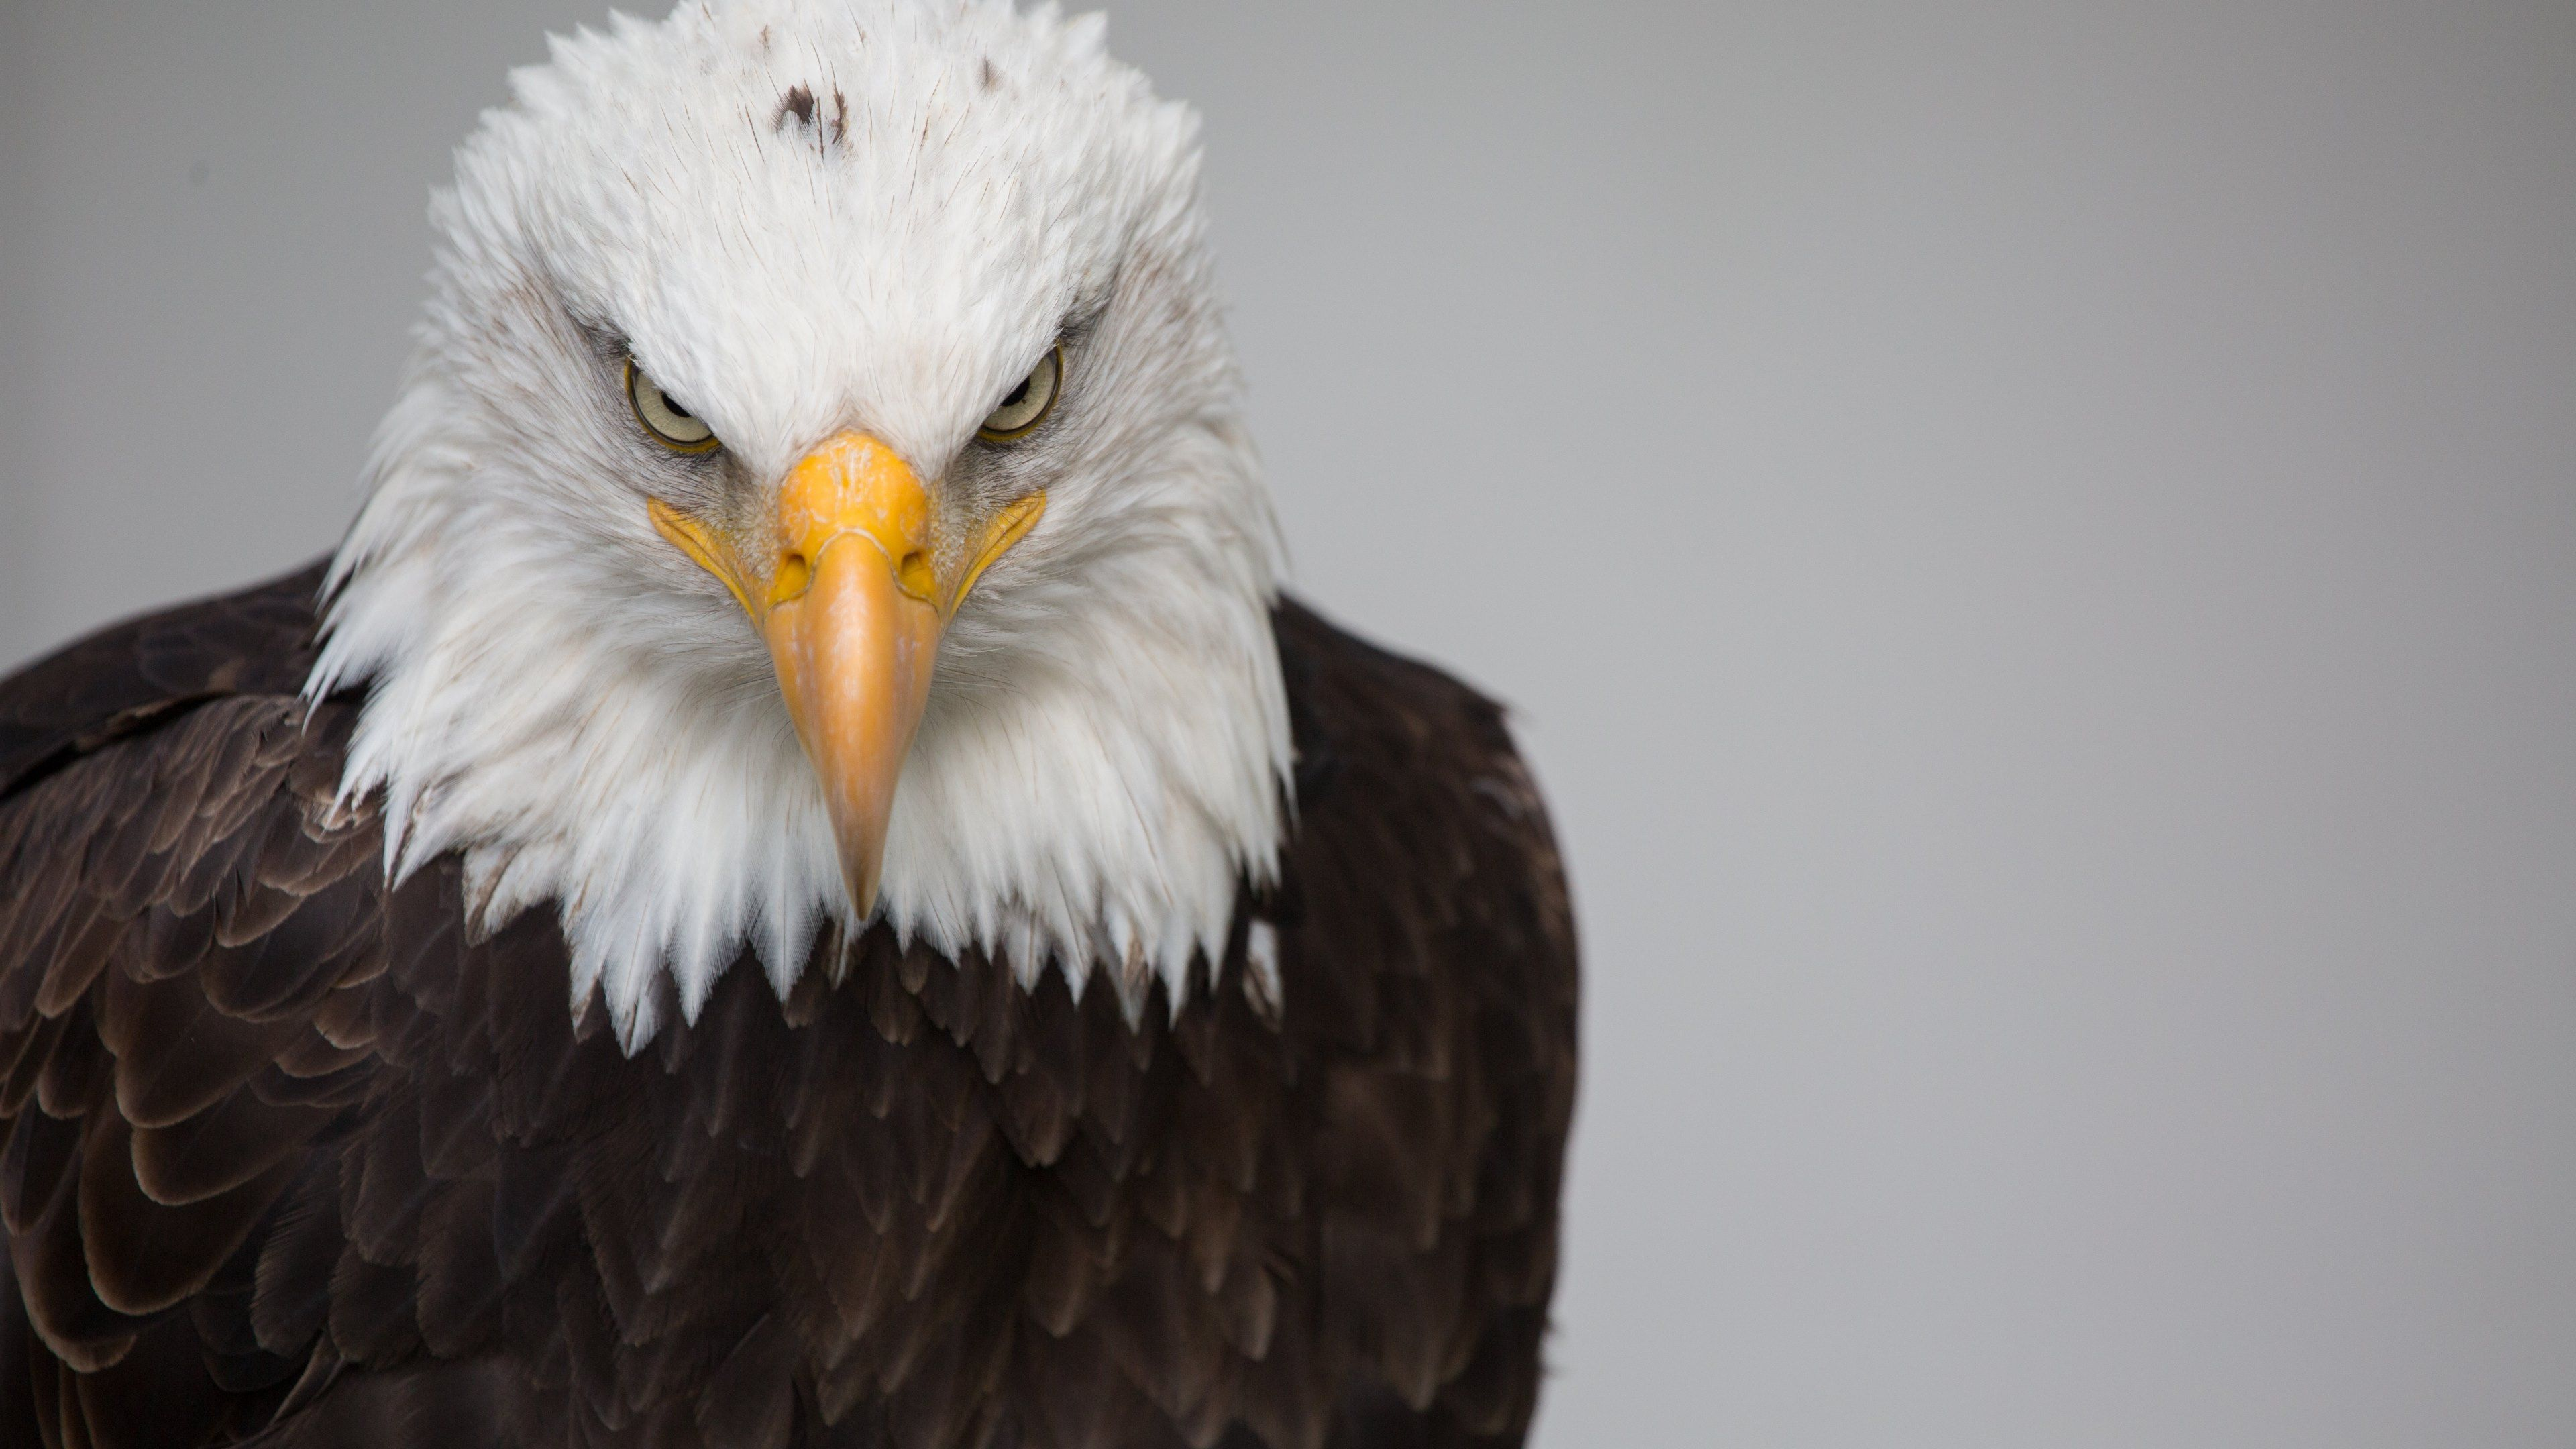 4k Eagle Wallpapers Top Free 4k Eagle Backgrounds Wallpaperaccess